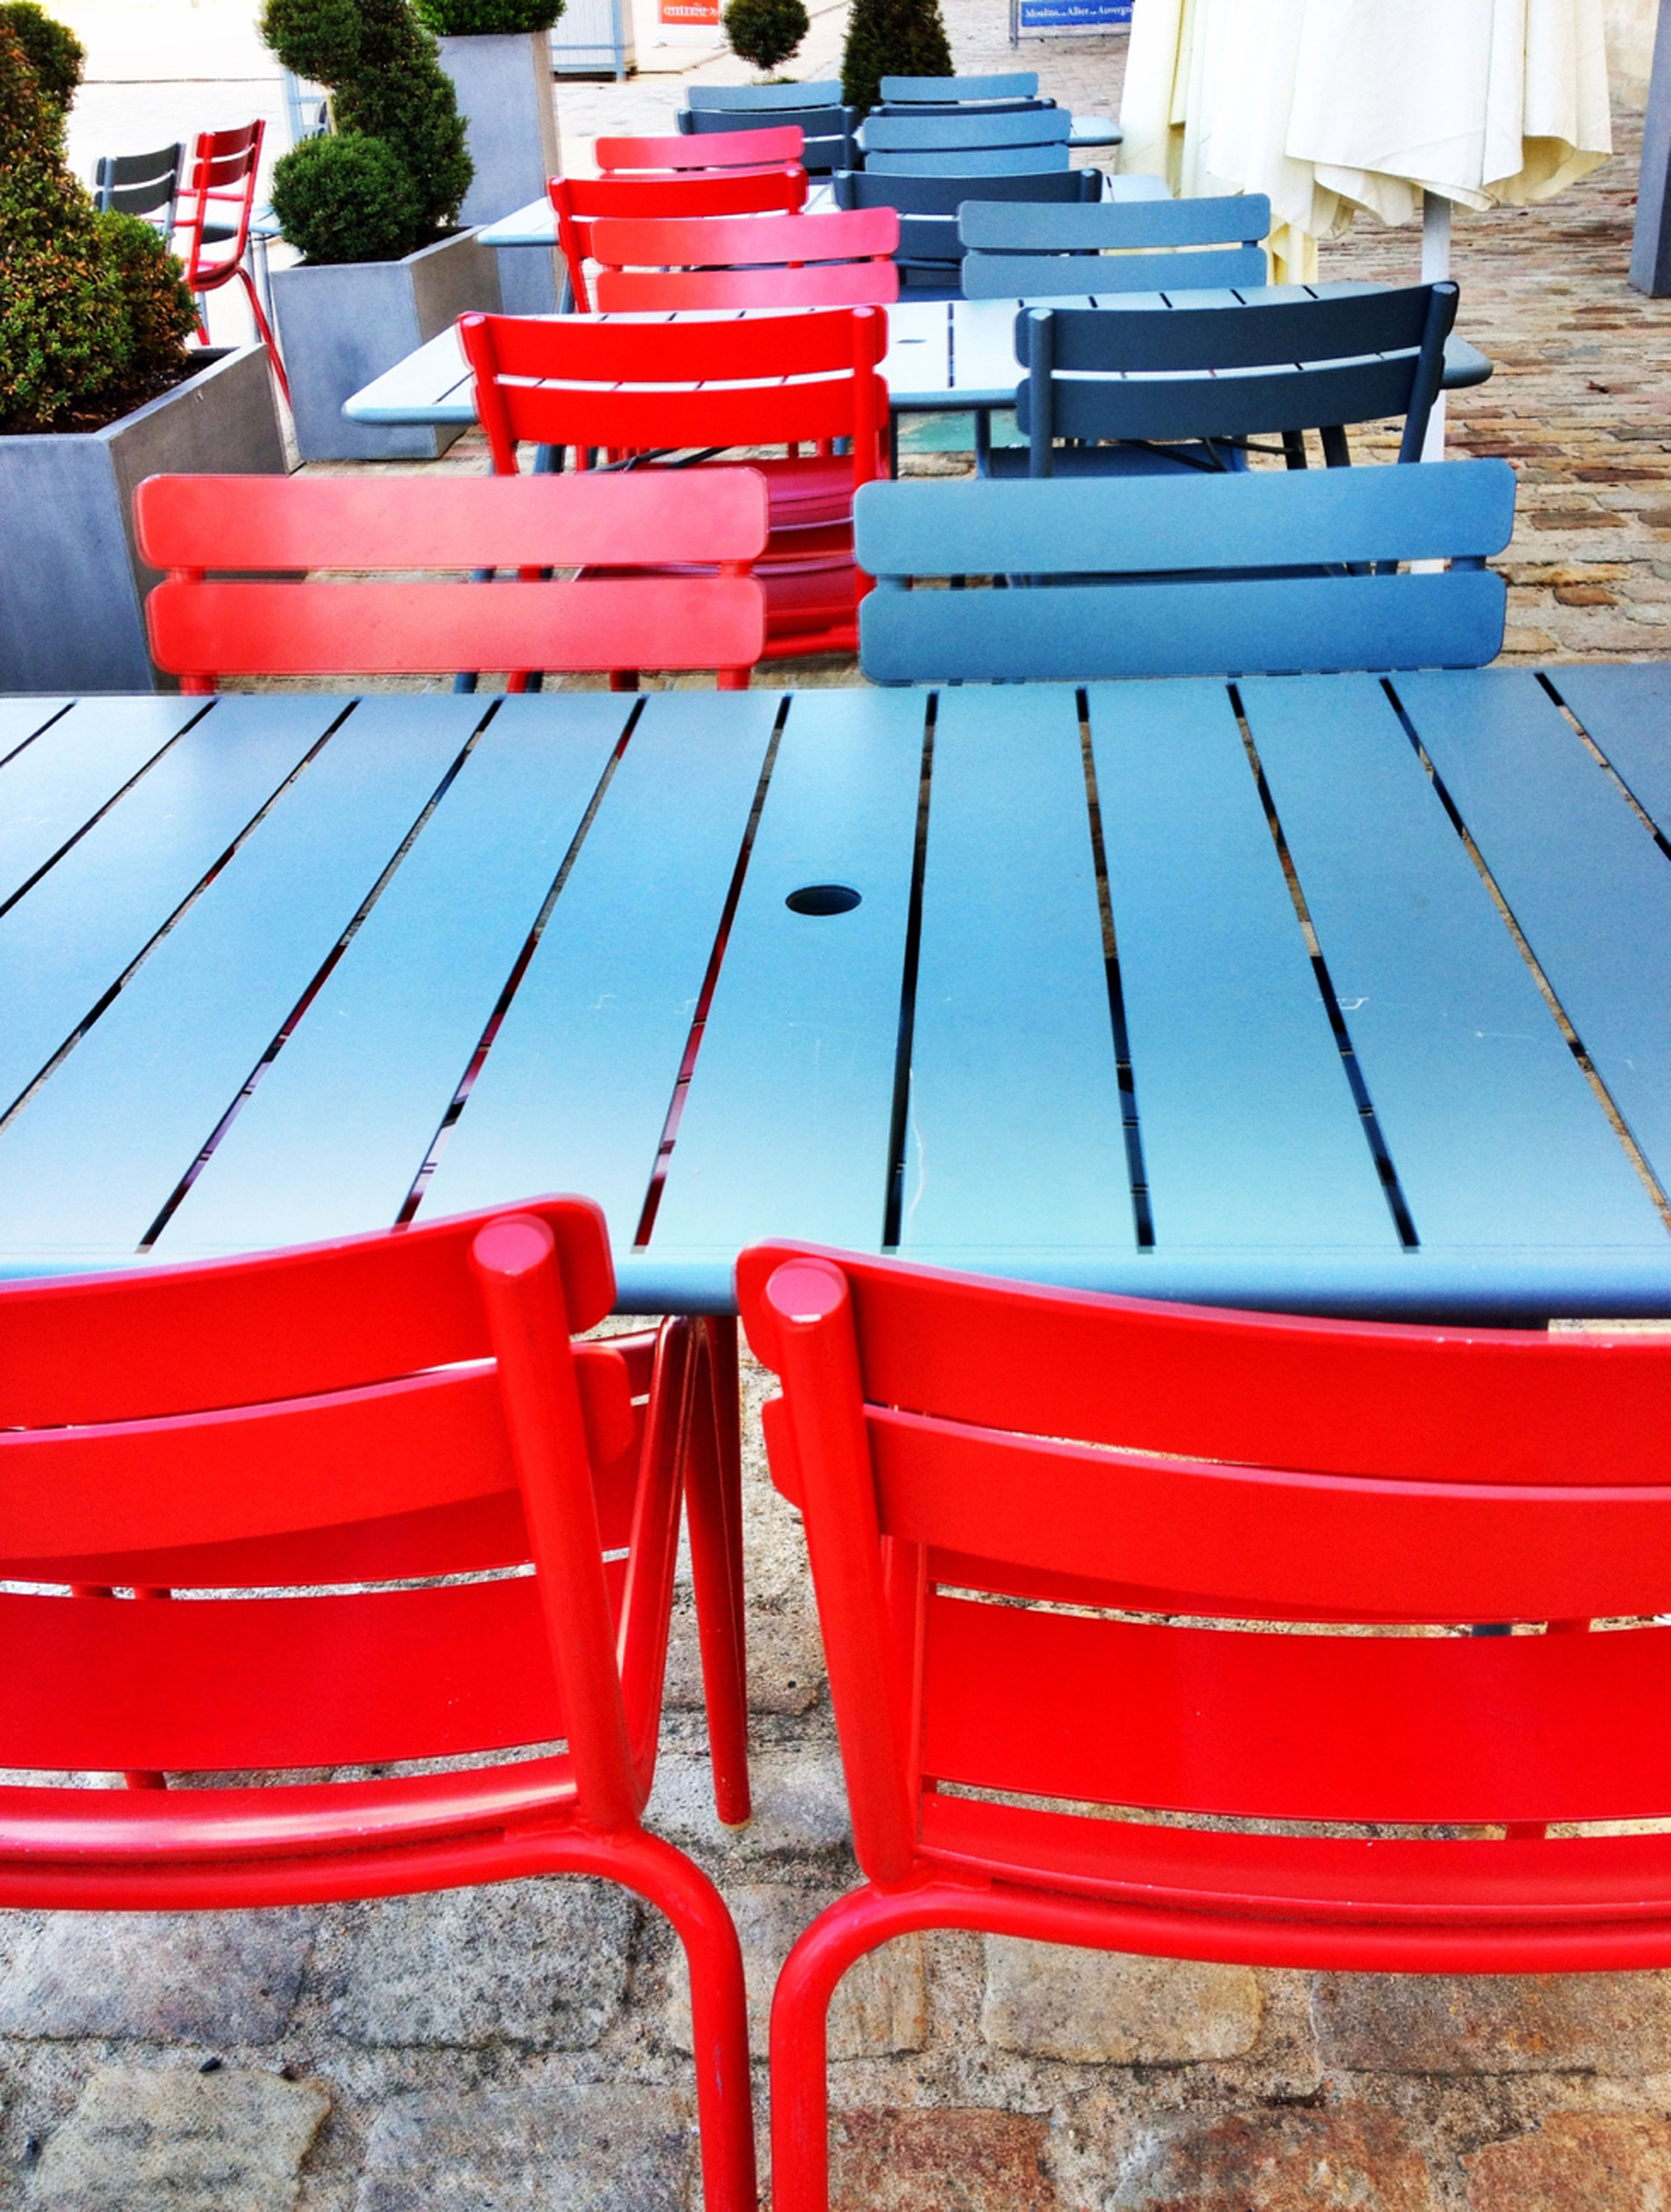 red, chair, empty, seat, absence, in a row, bench, day, outdoors, no people, transportation, railing, sunlight, high angle view, water, furniture, metal, group of objects, relaxation, table